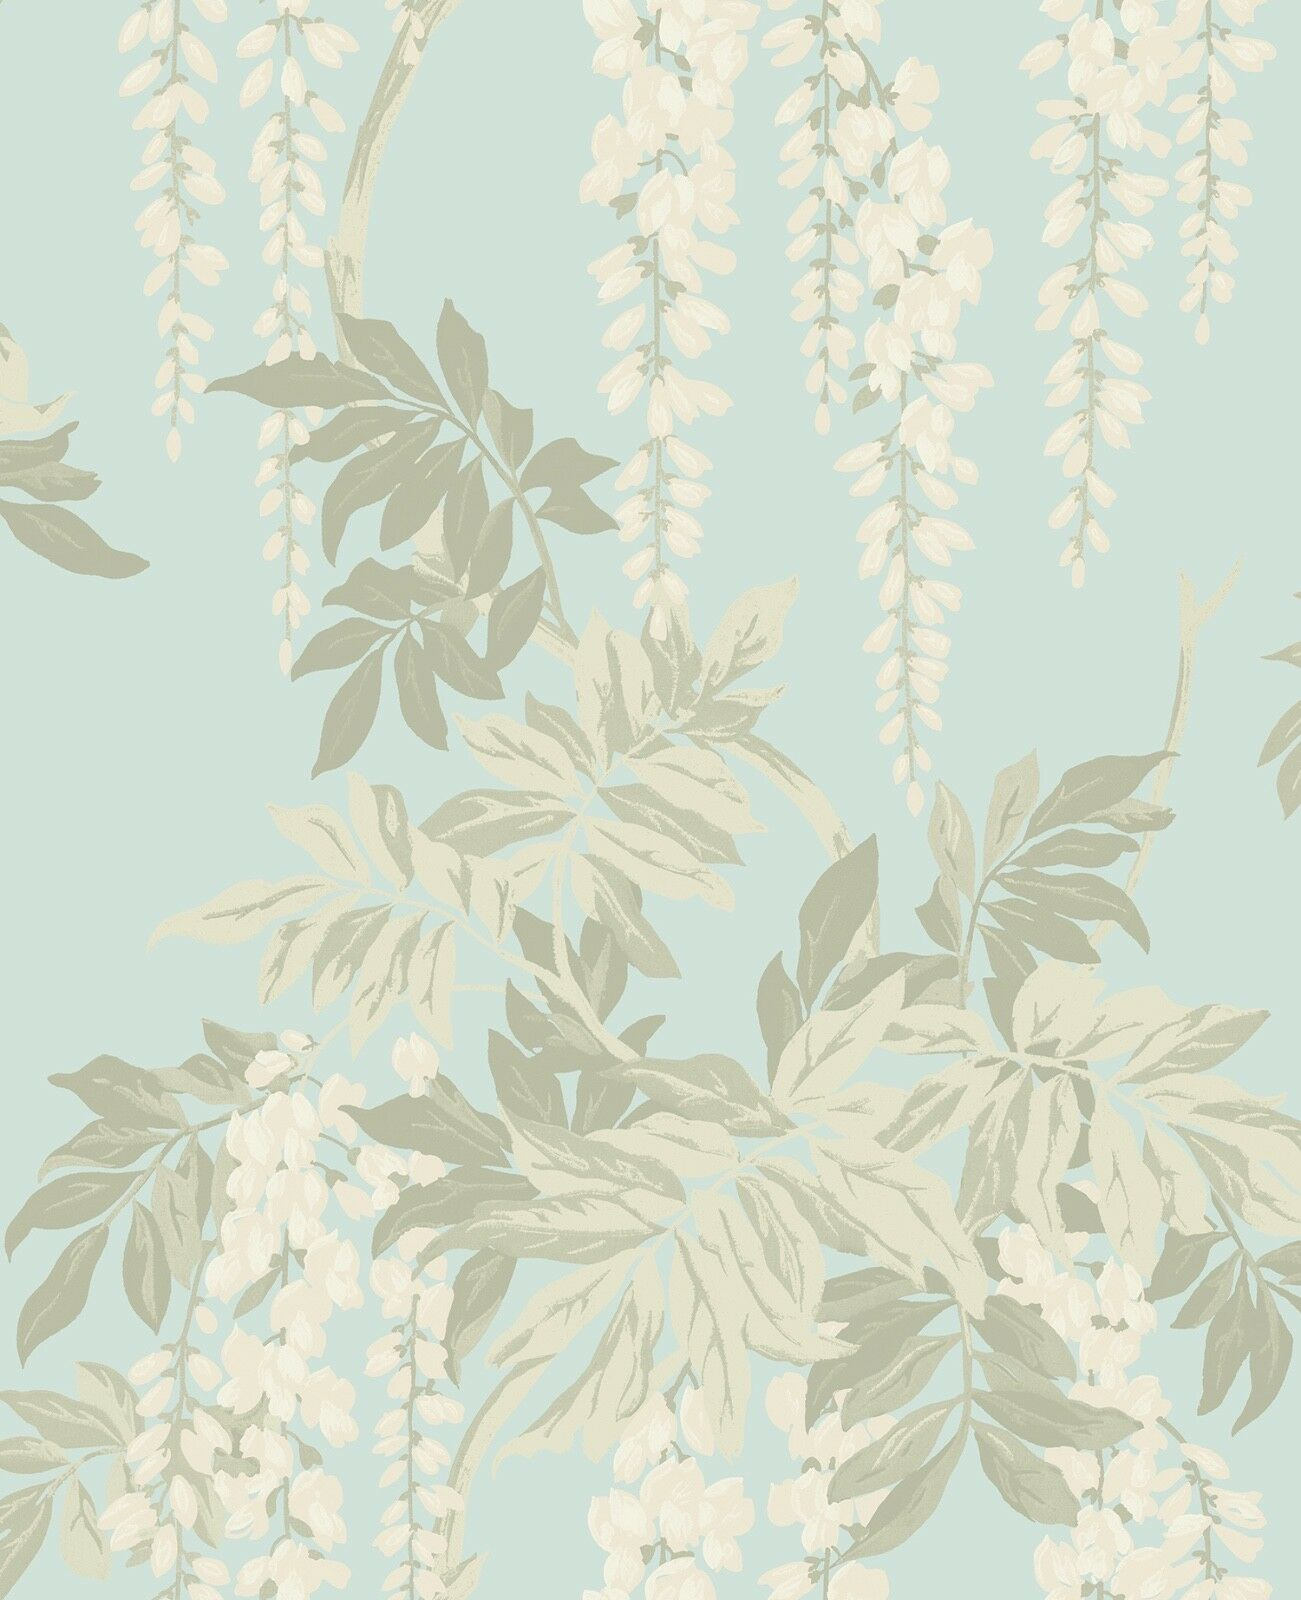 Blue Floral Wallpaper White Flowers Wisteria Vintage Style